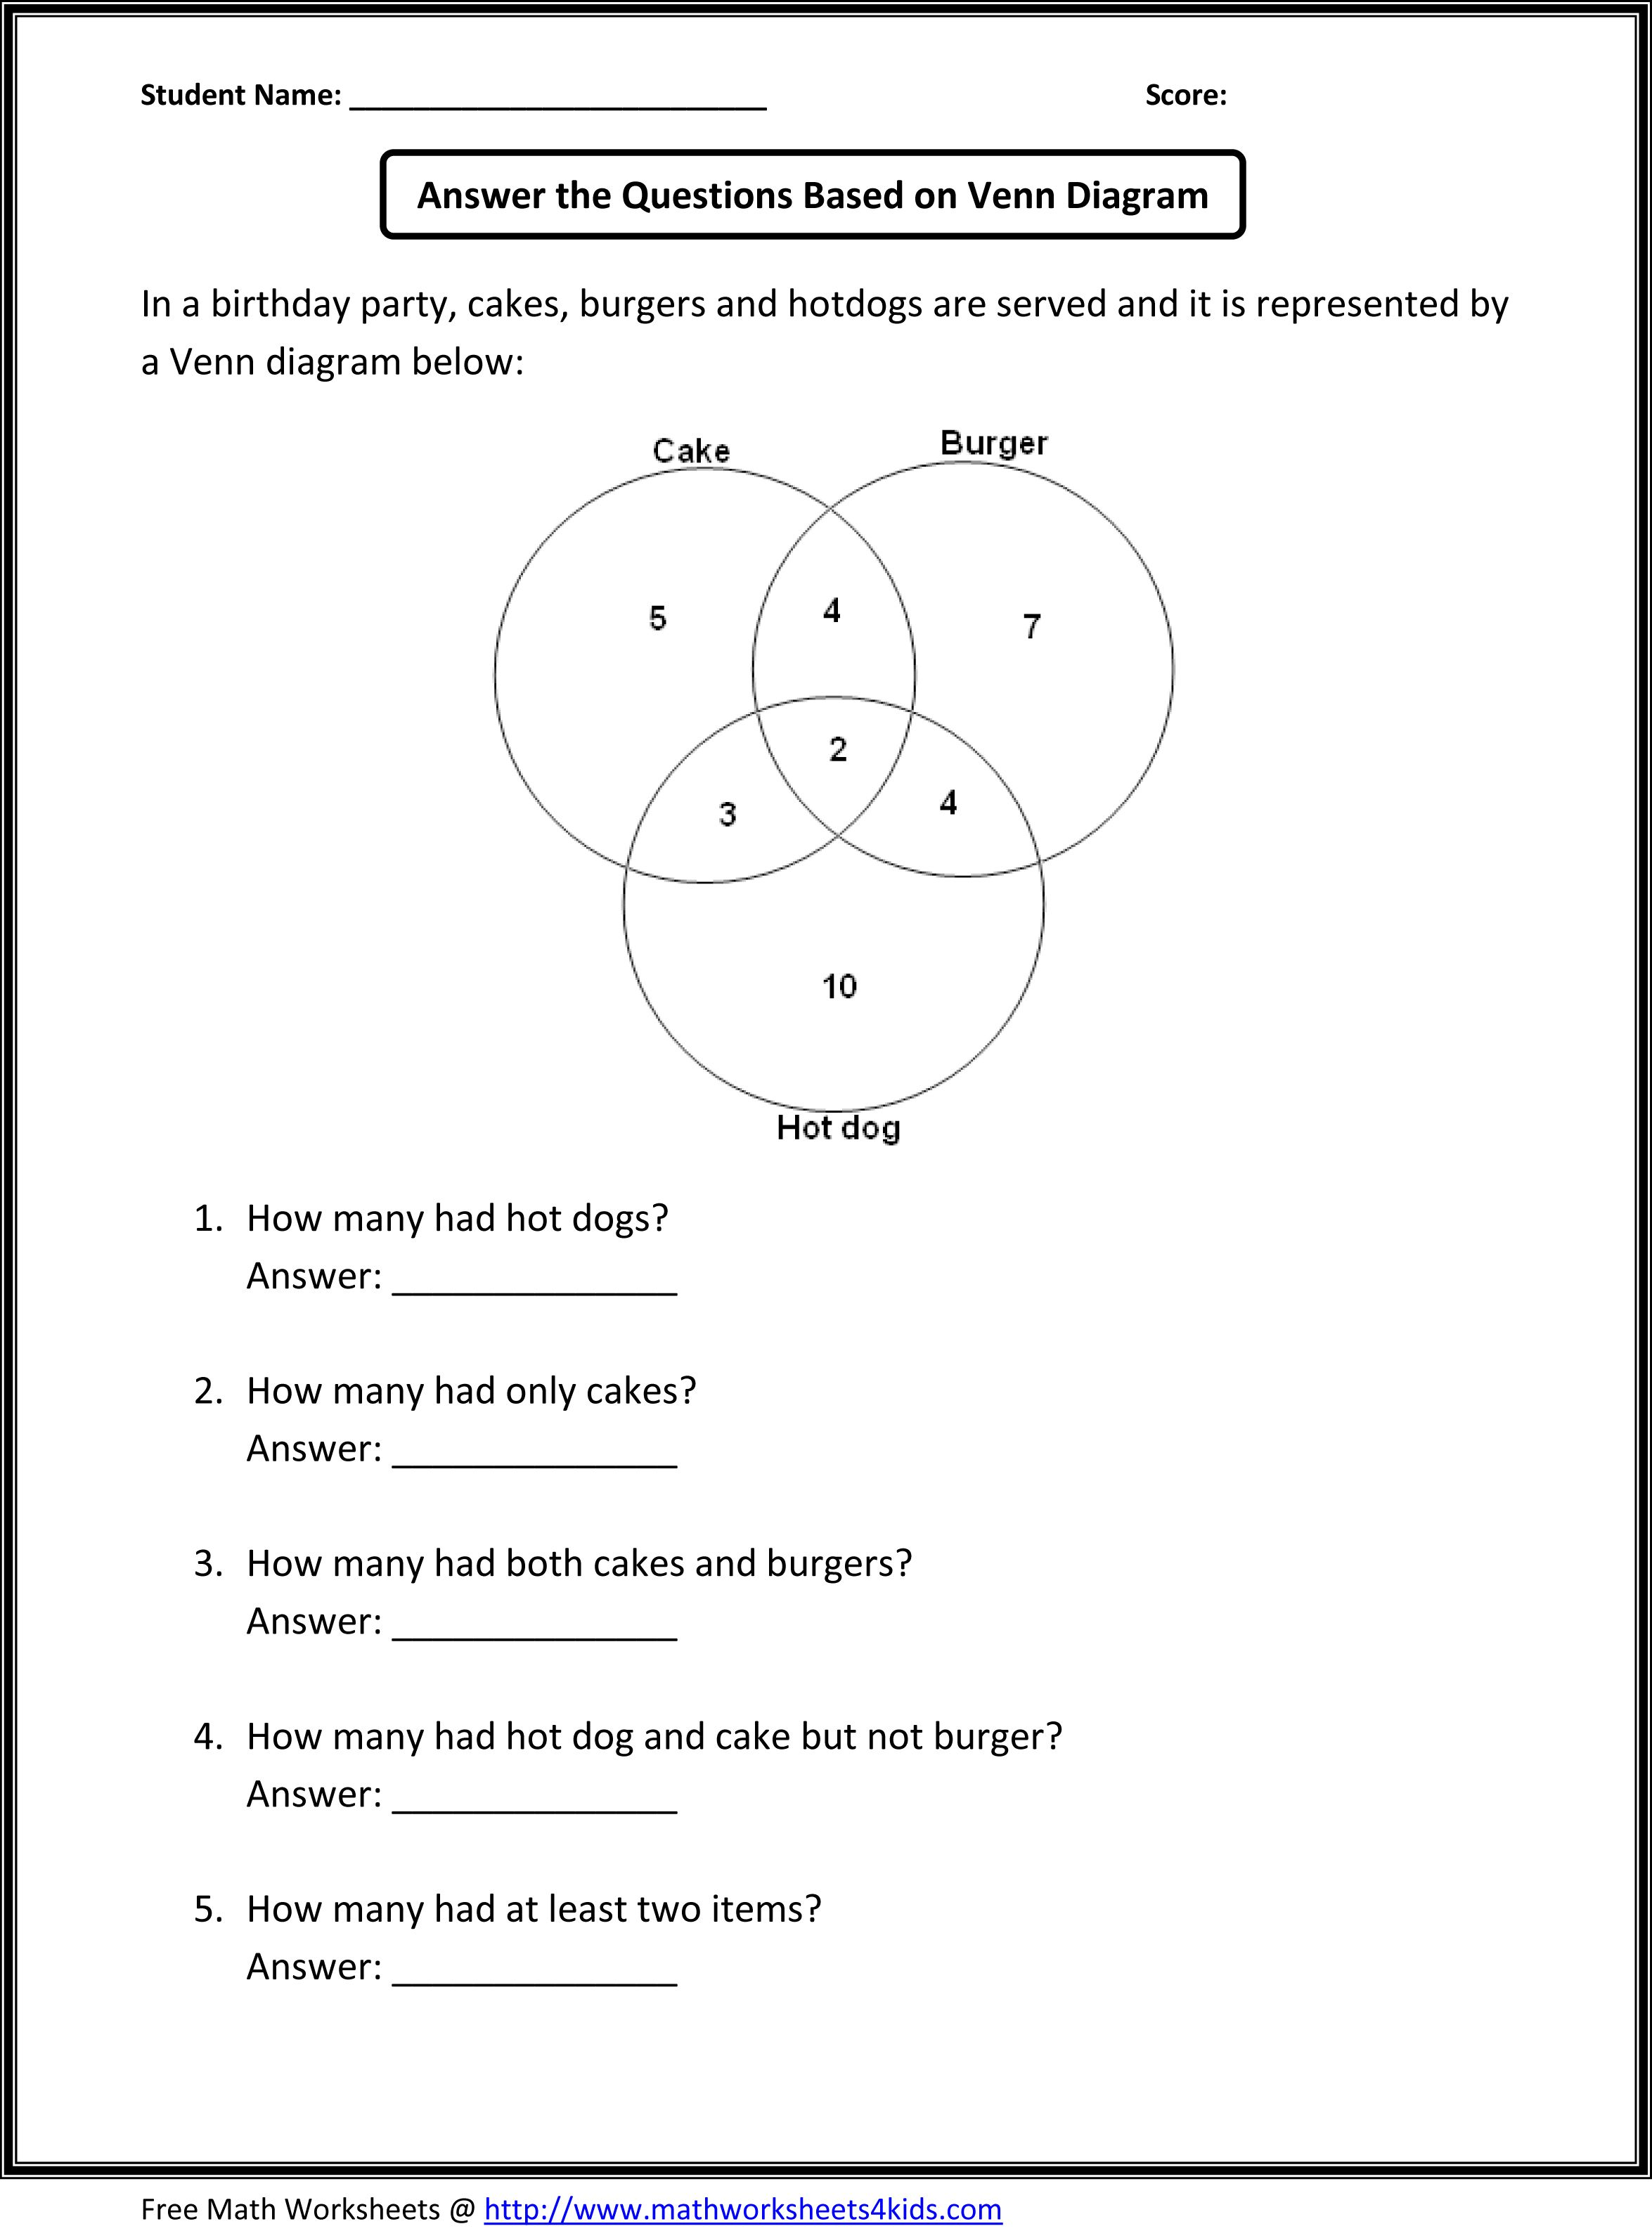 Venn diagram worksheets word problems using two sets projects to venn diagram worksheets word problems using two sets projects to try pinterest venn diagram worksheet venn diagrams and word problems ccuart Image collections